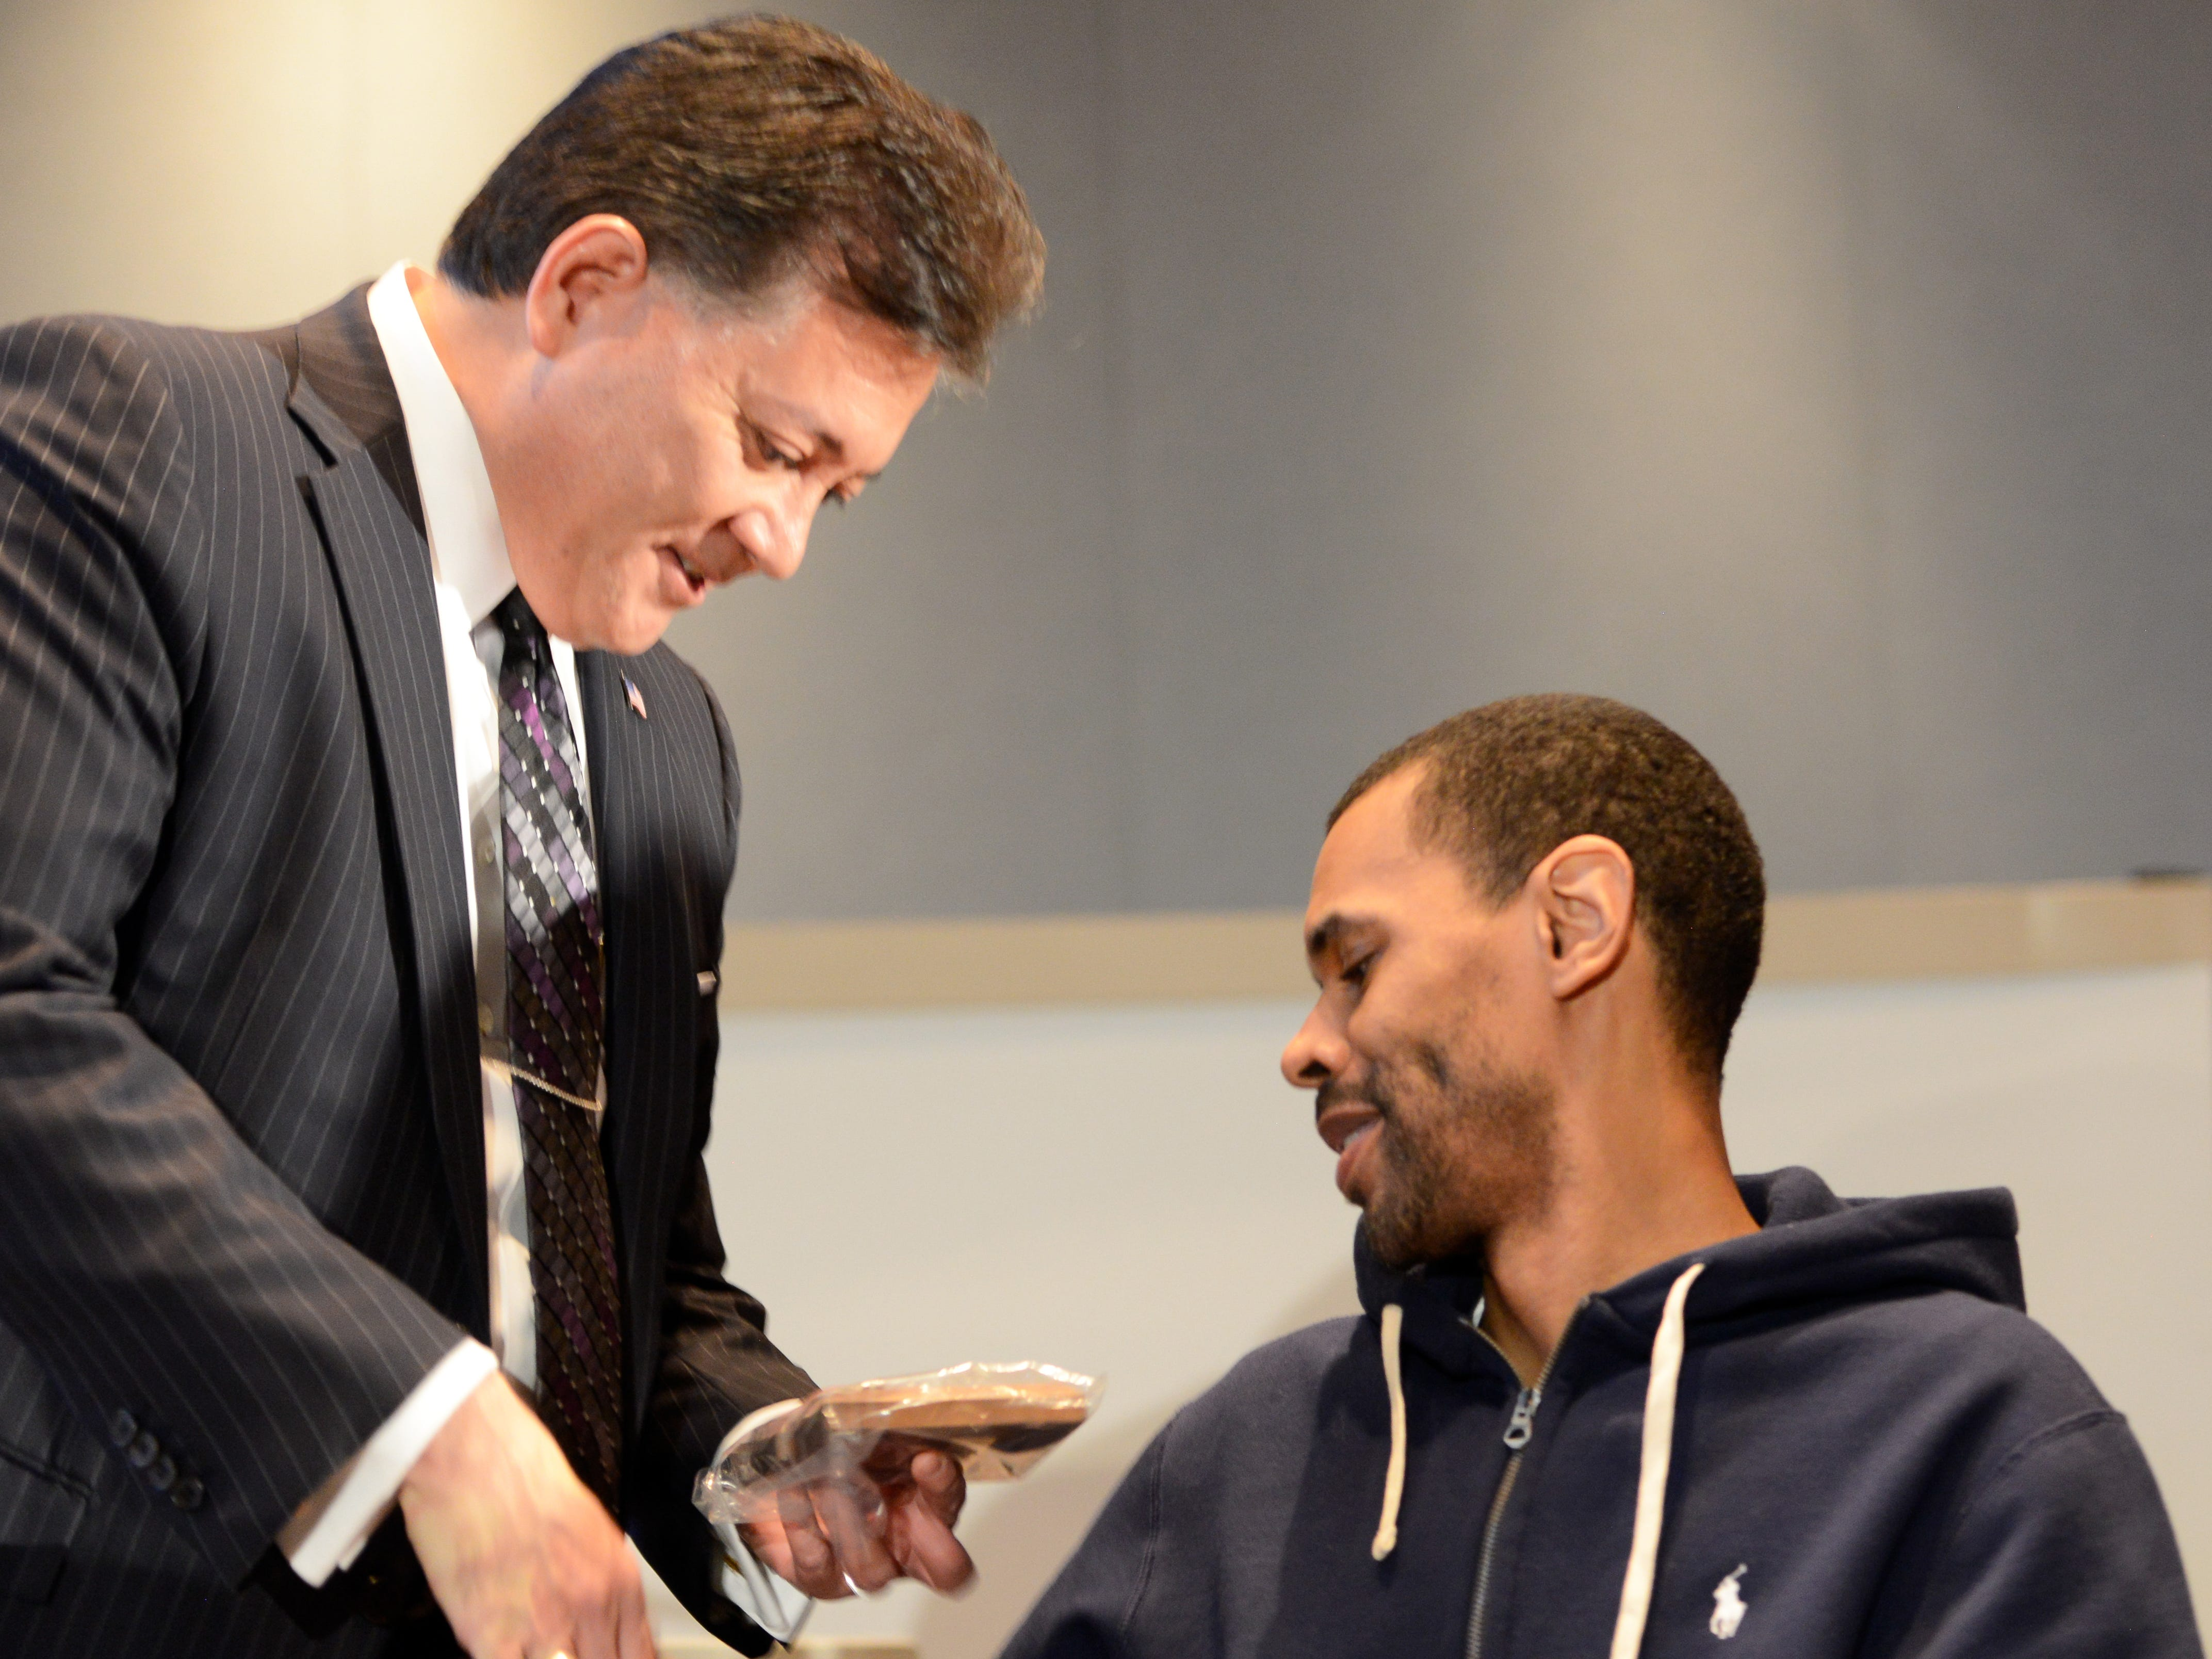 """Mayor Ken Miyagishima presents a key to the city to former New Mexico State University basketball player Shawn Harrington, who was paralyzed in a gun attack in his hometown of Chicago, after the mayor's """"State of the City"""" address on Thursday, Feb. 28, 2019."""